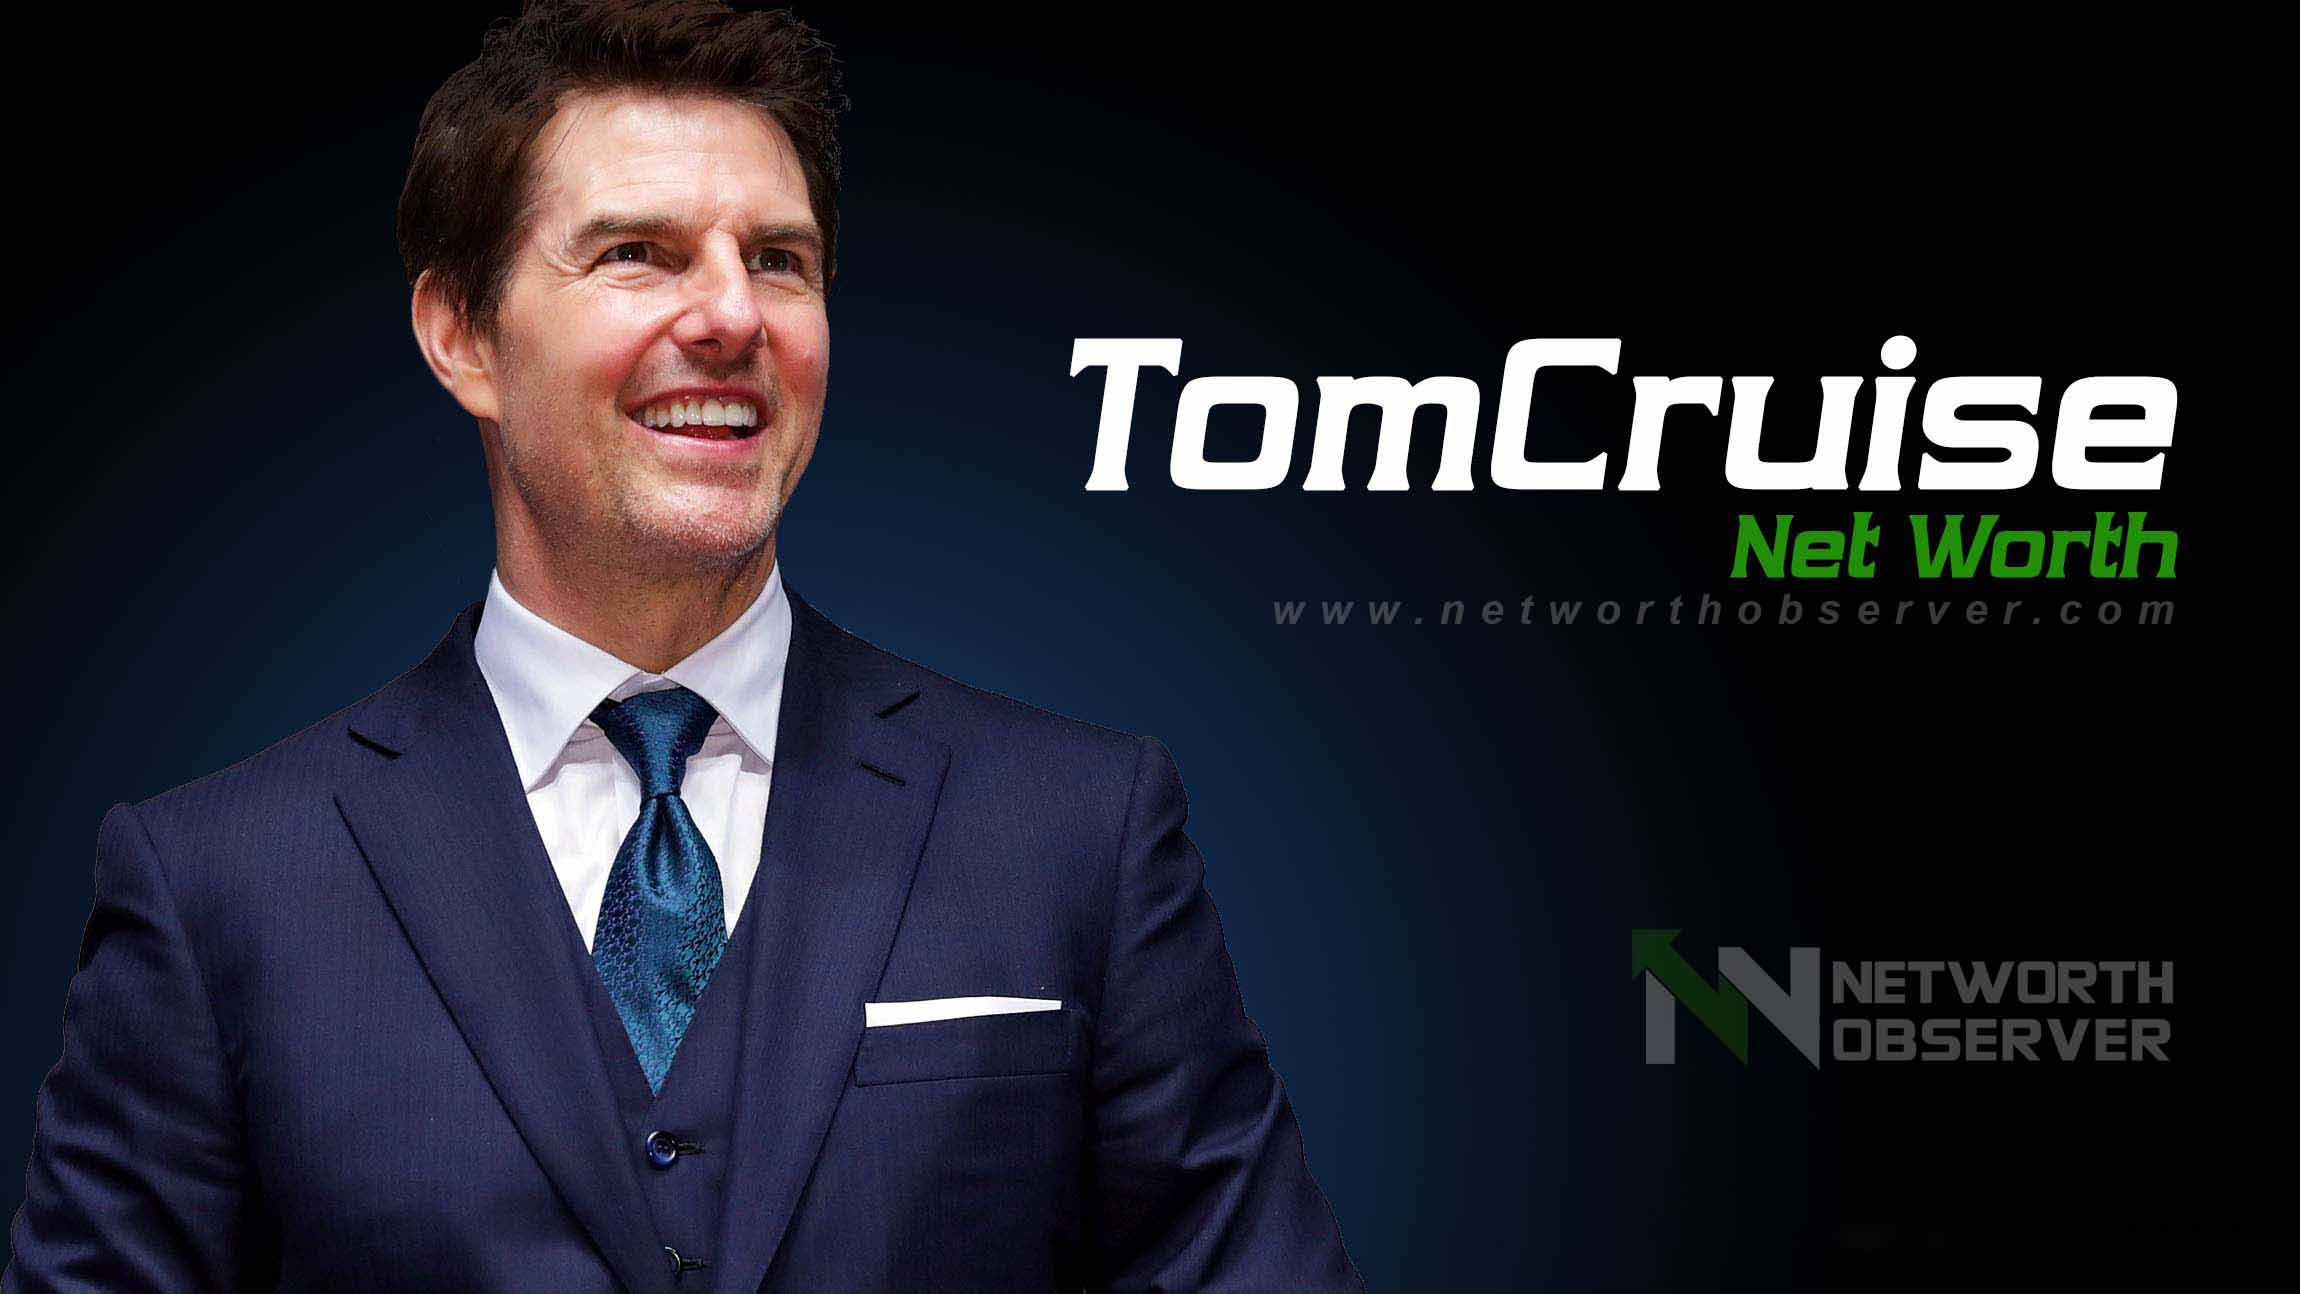 Photo of Tom Cruise Net Worth and his Lifestyle